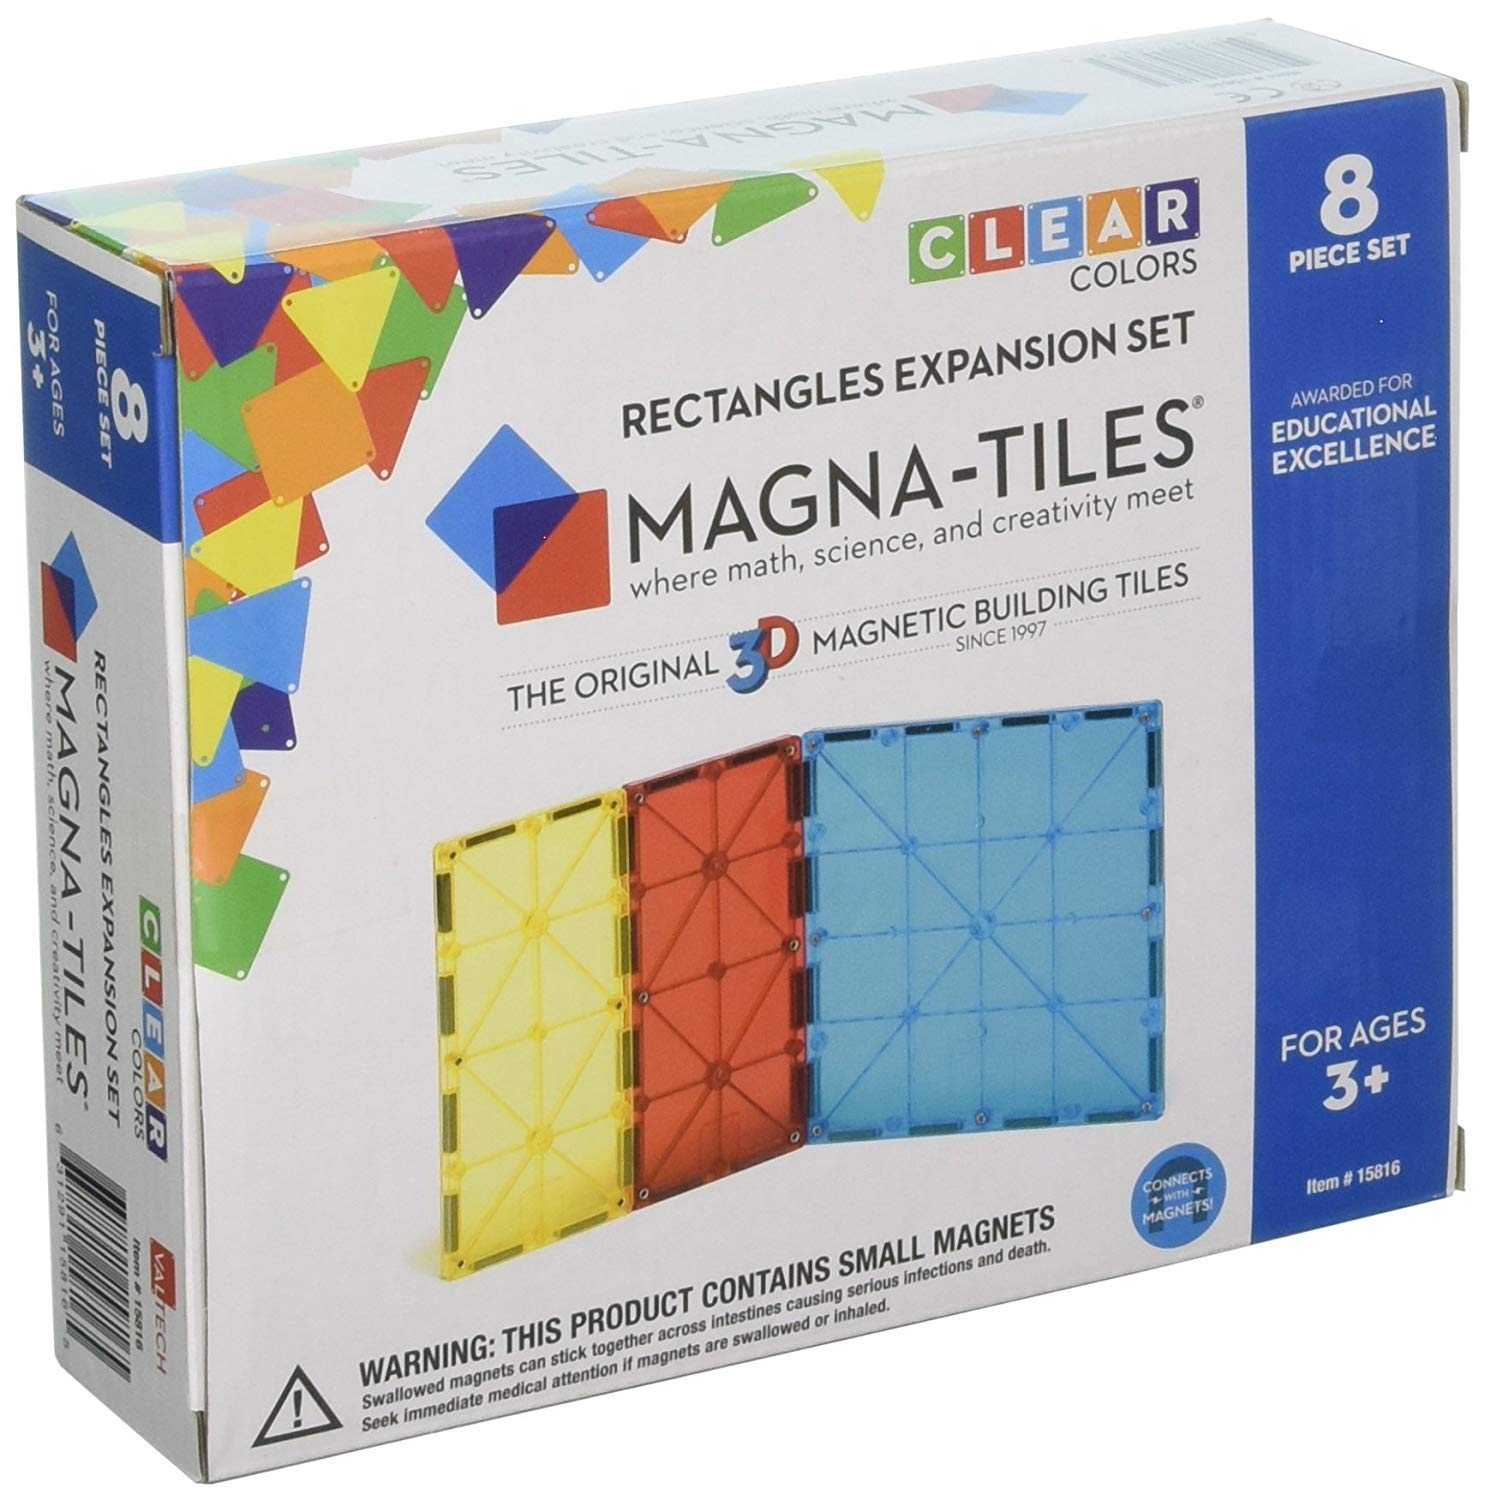 Magna-Tiles 32-Piece Clear Colors Set - The Original, Award-Winning Magnetic Building Tiles - Creativity and Educational - STEM Approved Bundled 8-Piece Rectangles Expansion Set - The by Magna-Tiles (Image #3)